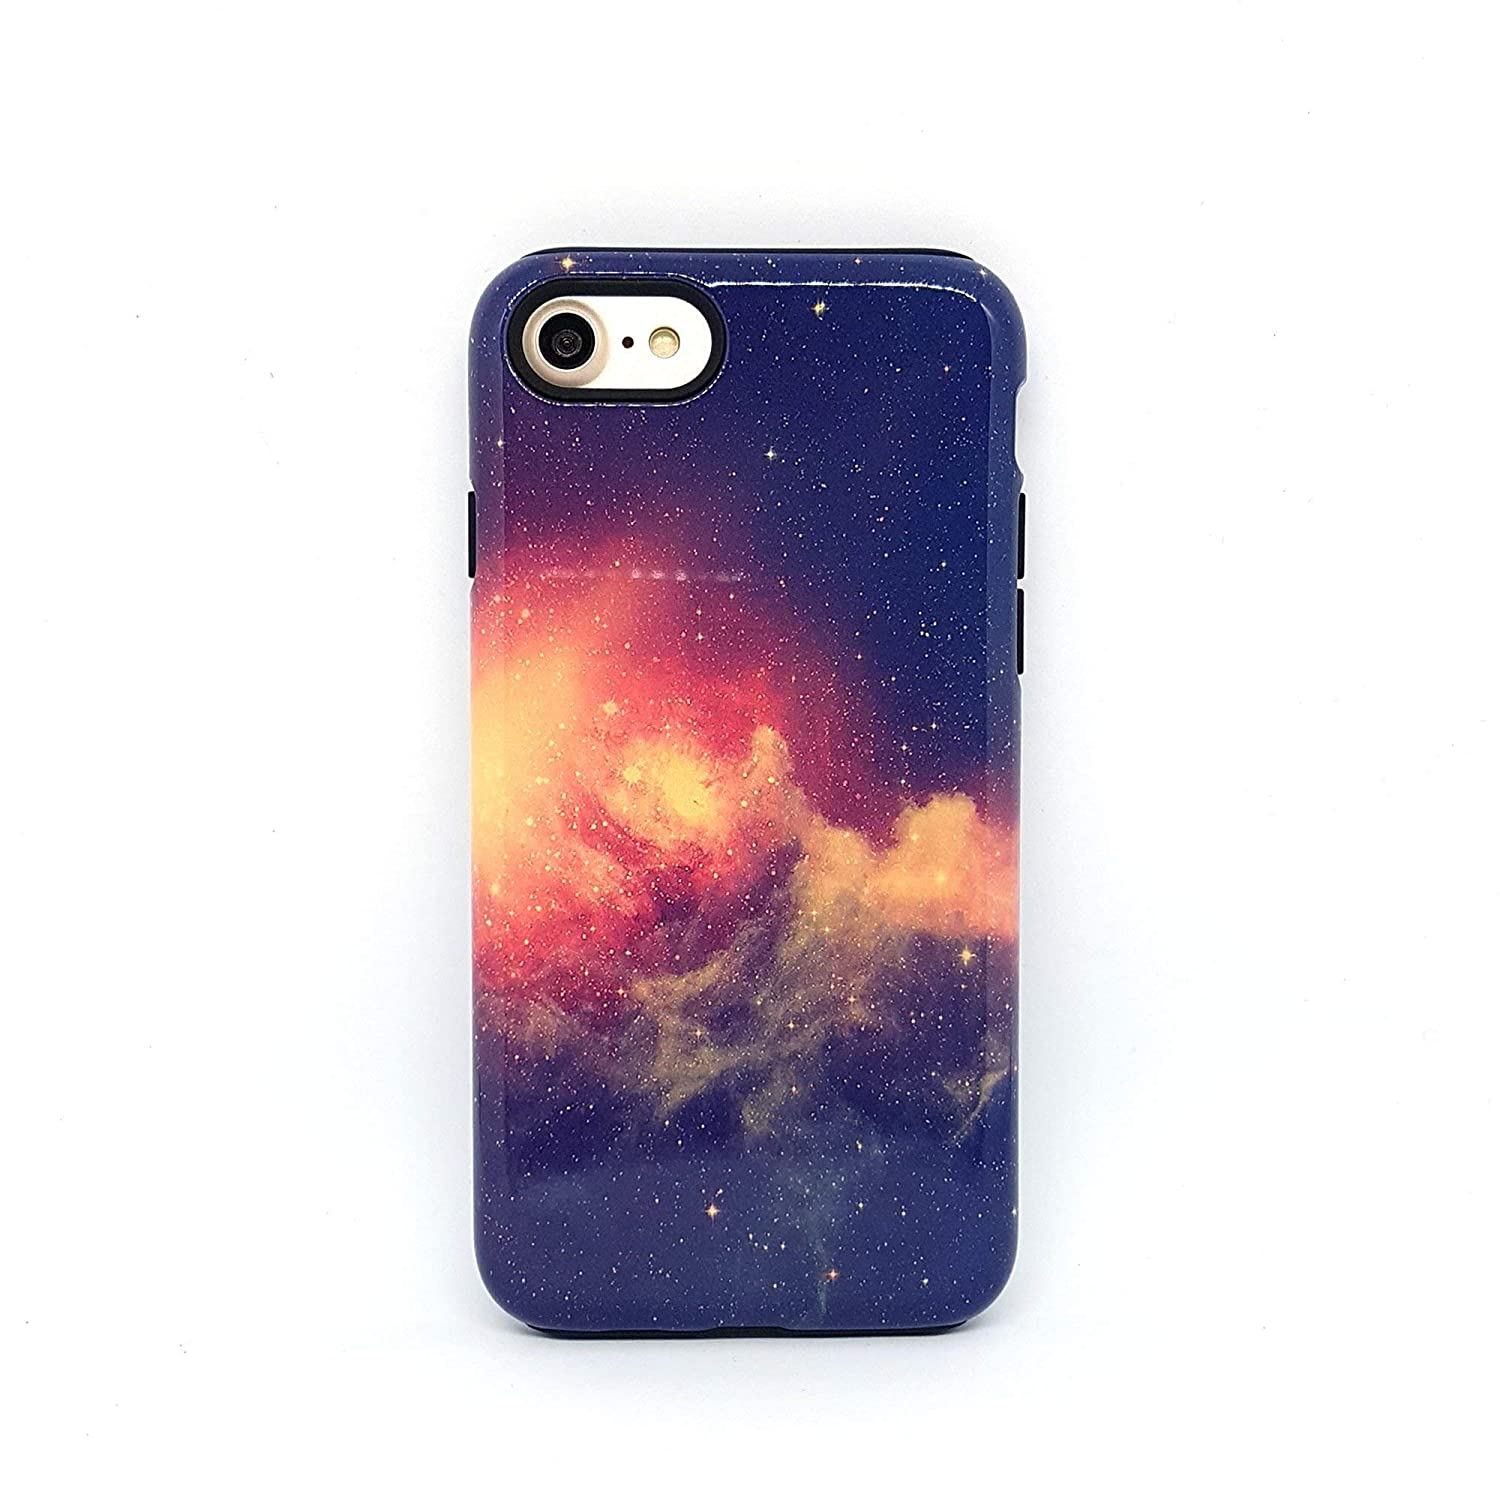 Spazio Nebulosa cover case custodia per iPhone 5, 5s, 6, 6s, 7, 7 plus, 8, 8 plus, X, XS, per Galaxy S6, S7, S8